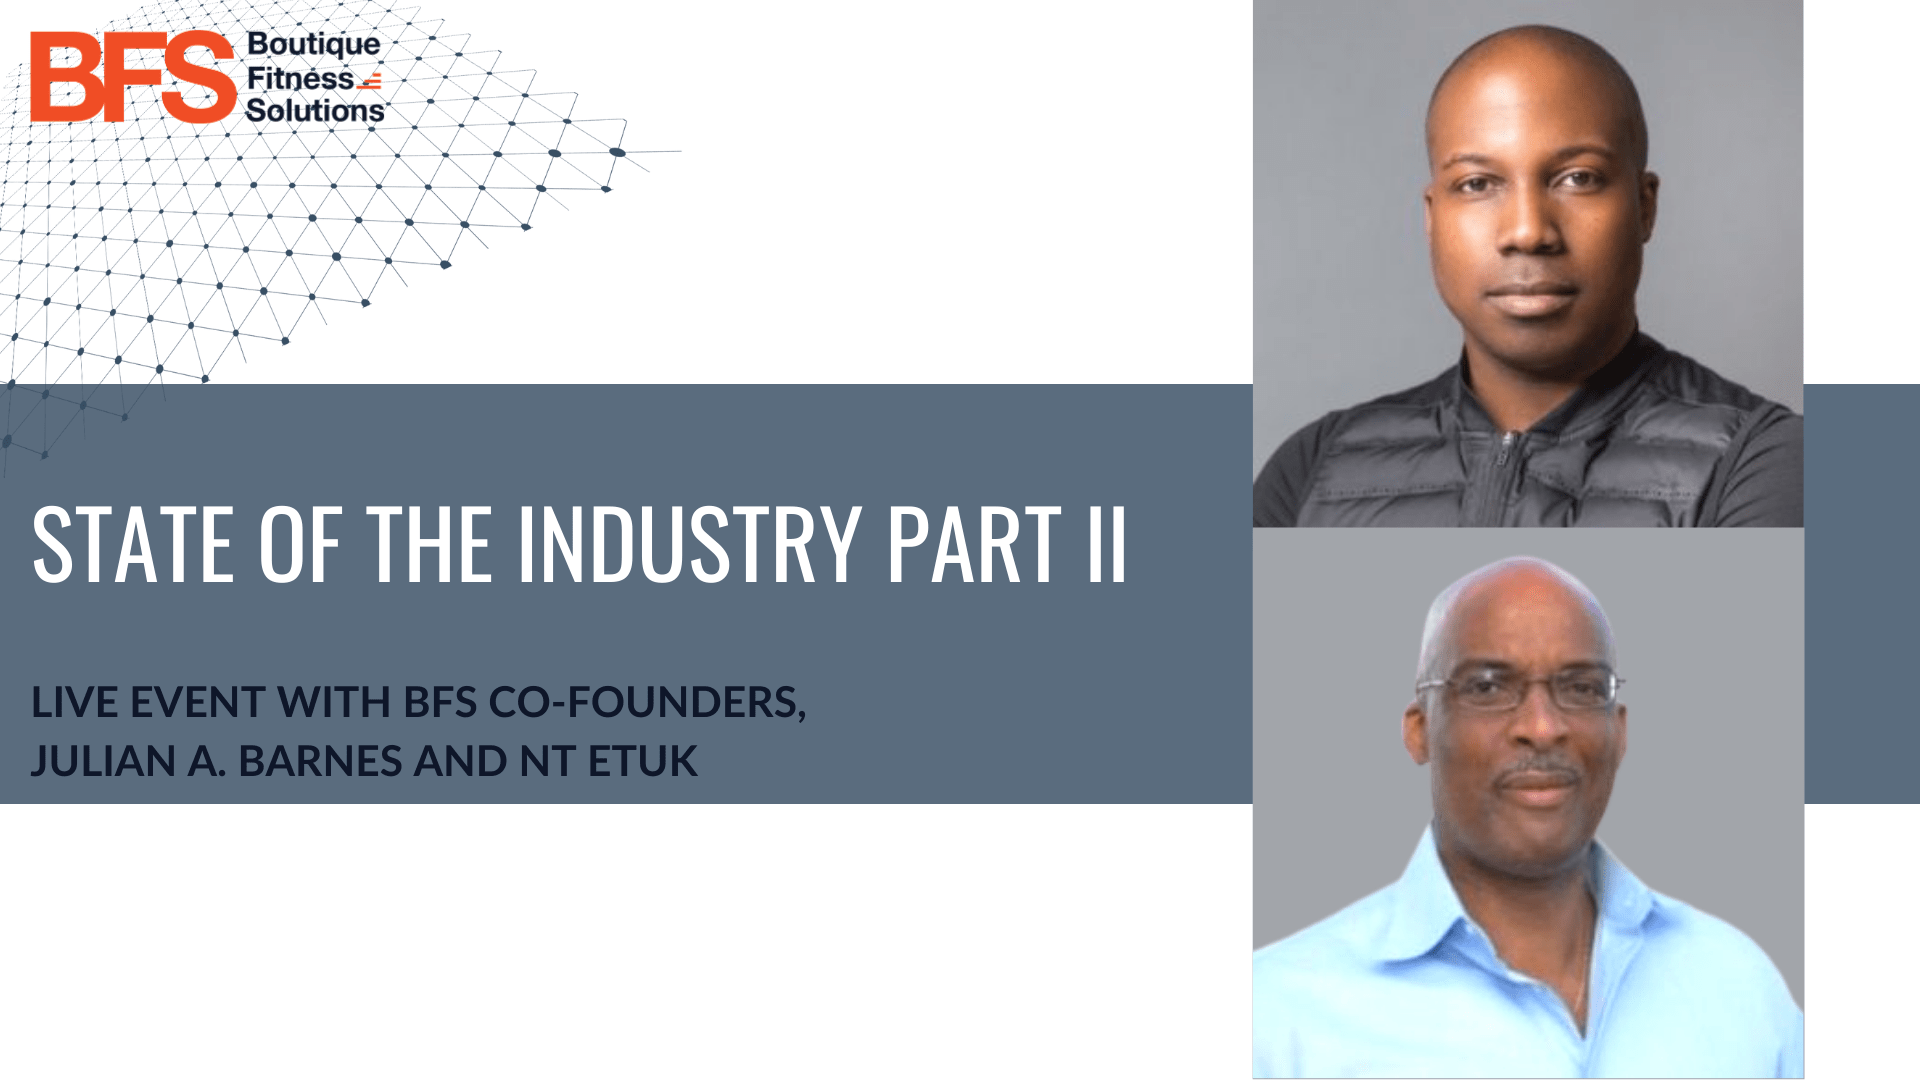 State of the Industry Part II